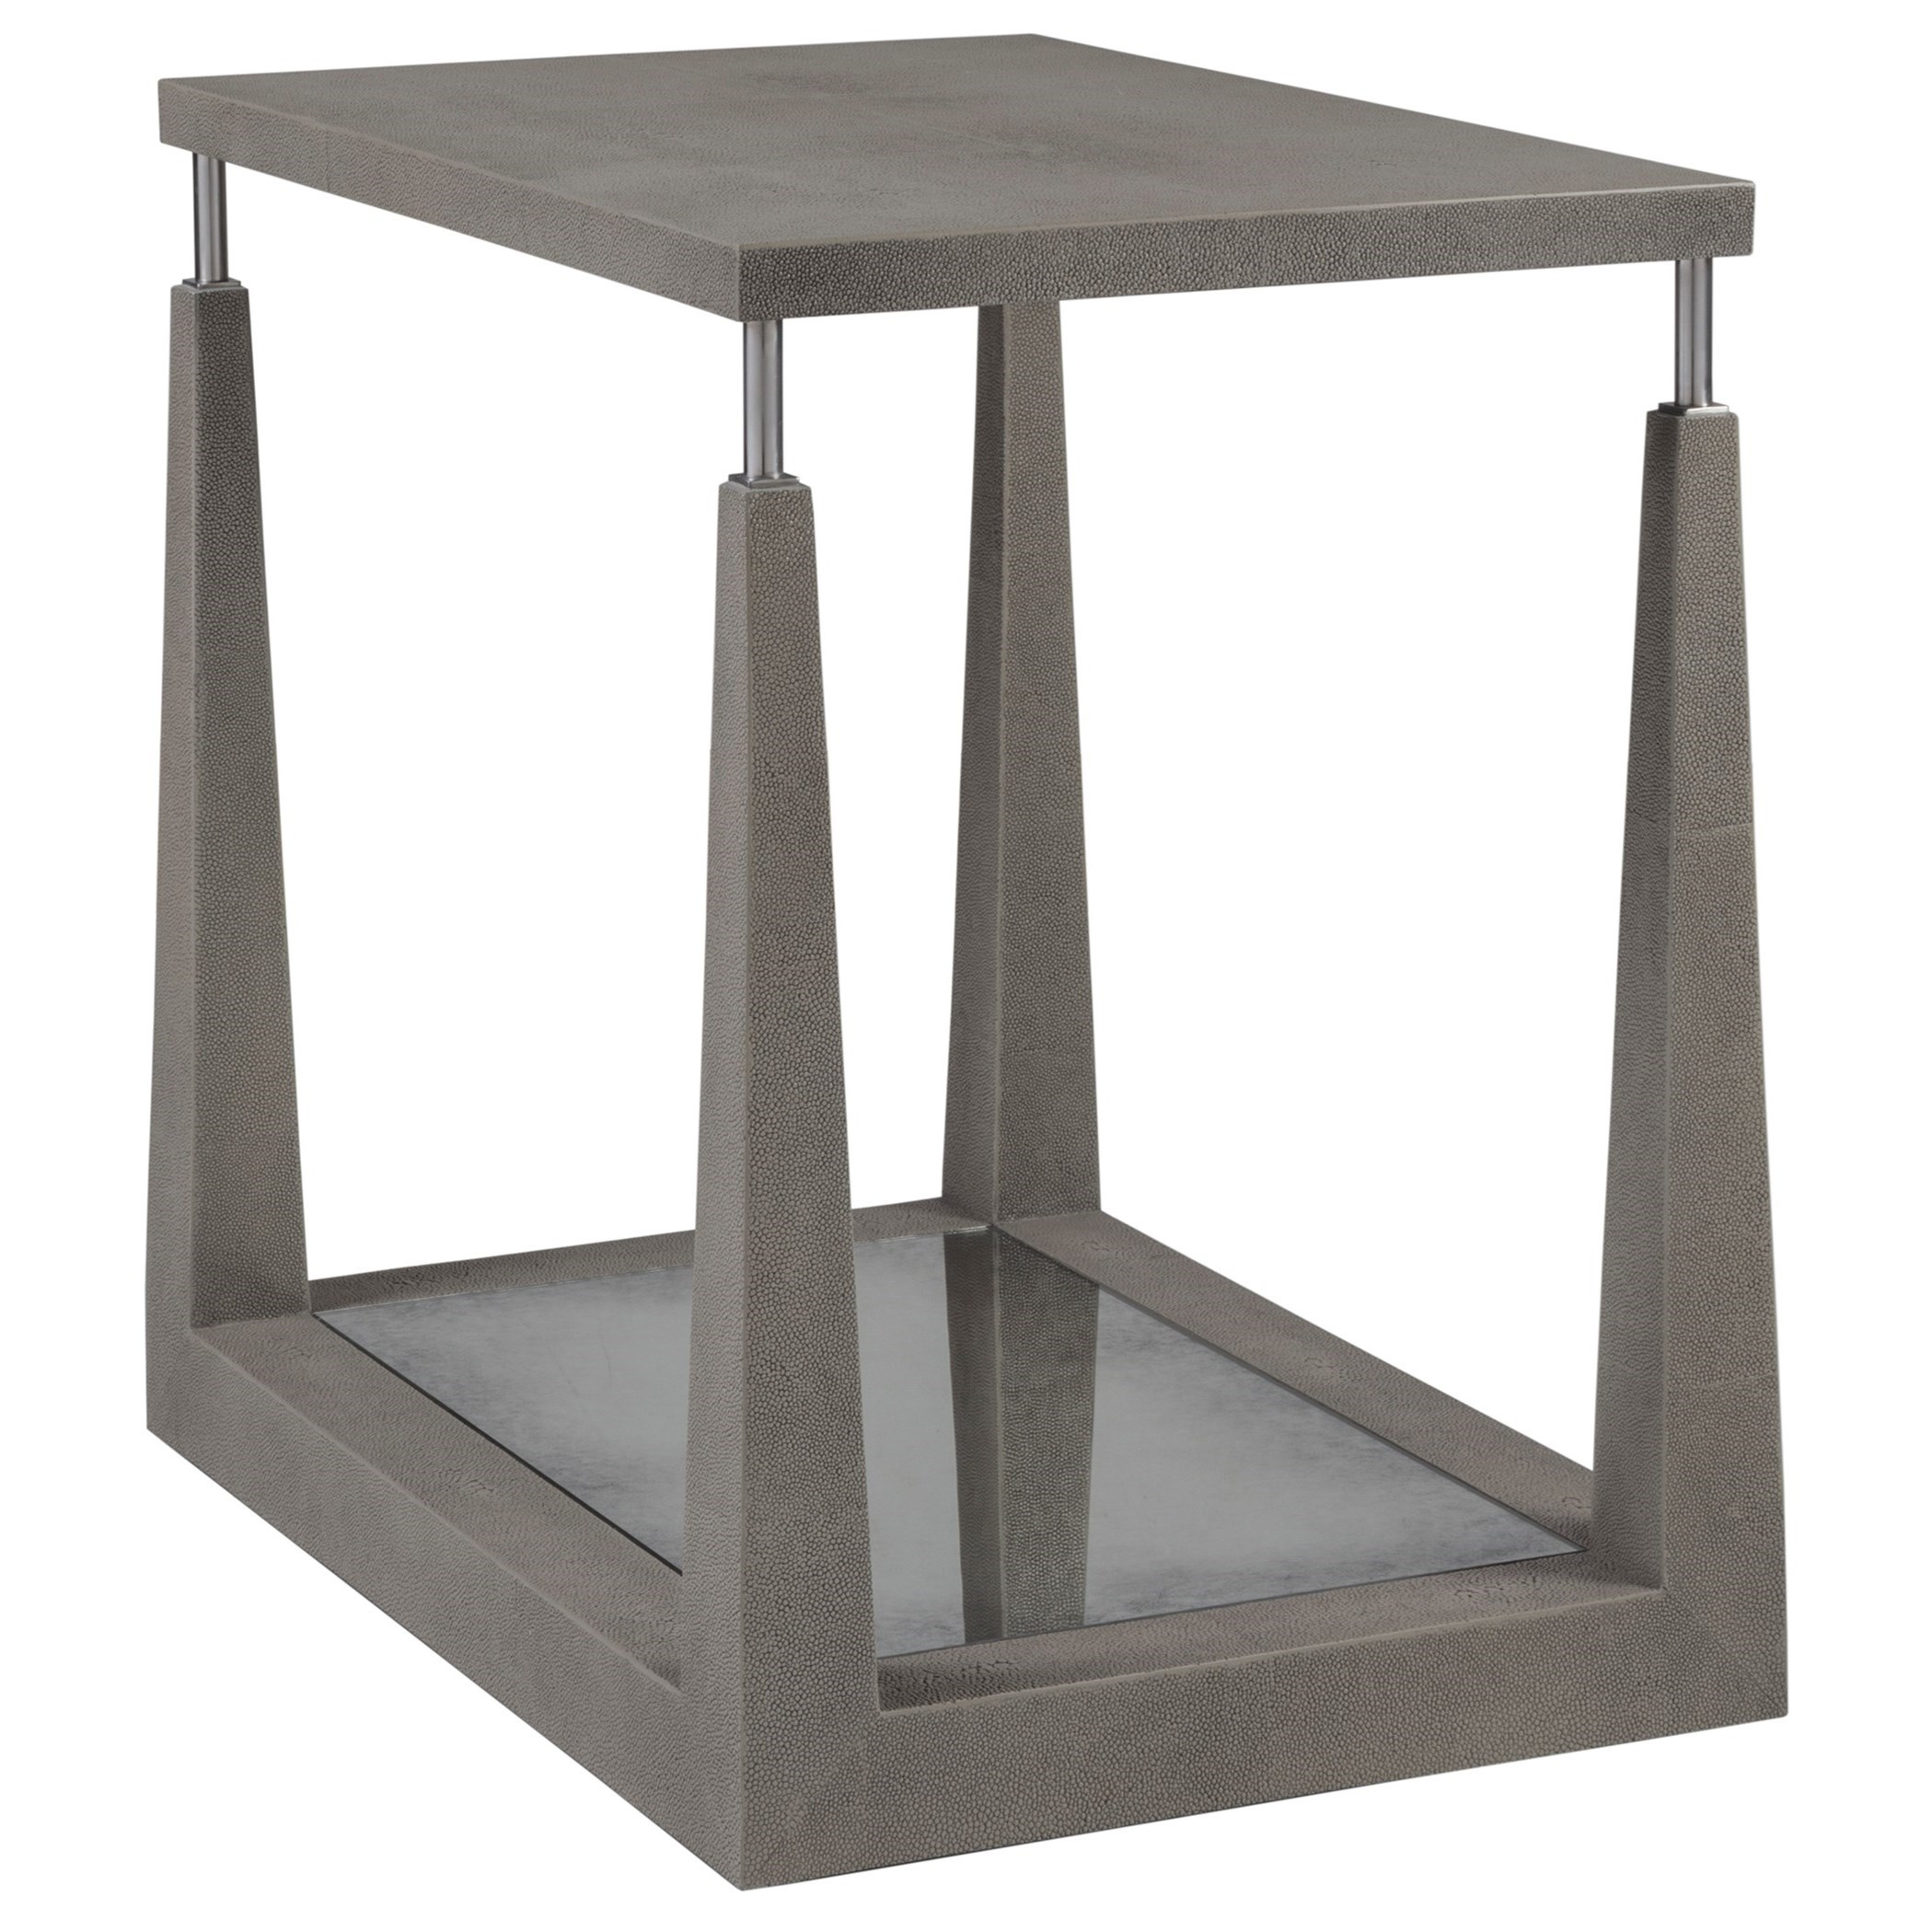 Ascension Rectangular End Table by Artistica at Baer's Furniture